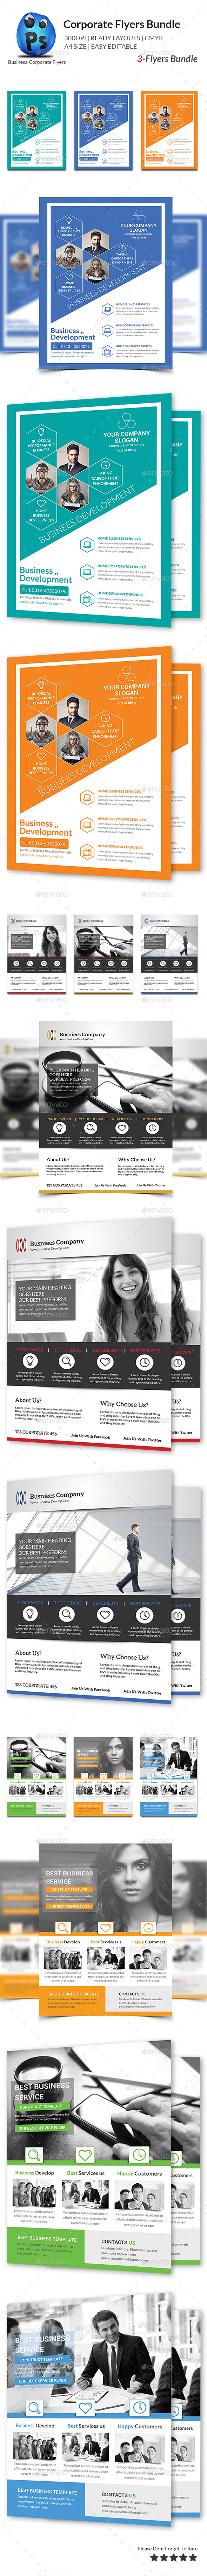 GraphicRiver Corporate Business 3 Flyer Bundle 10618644